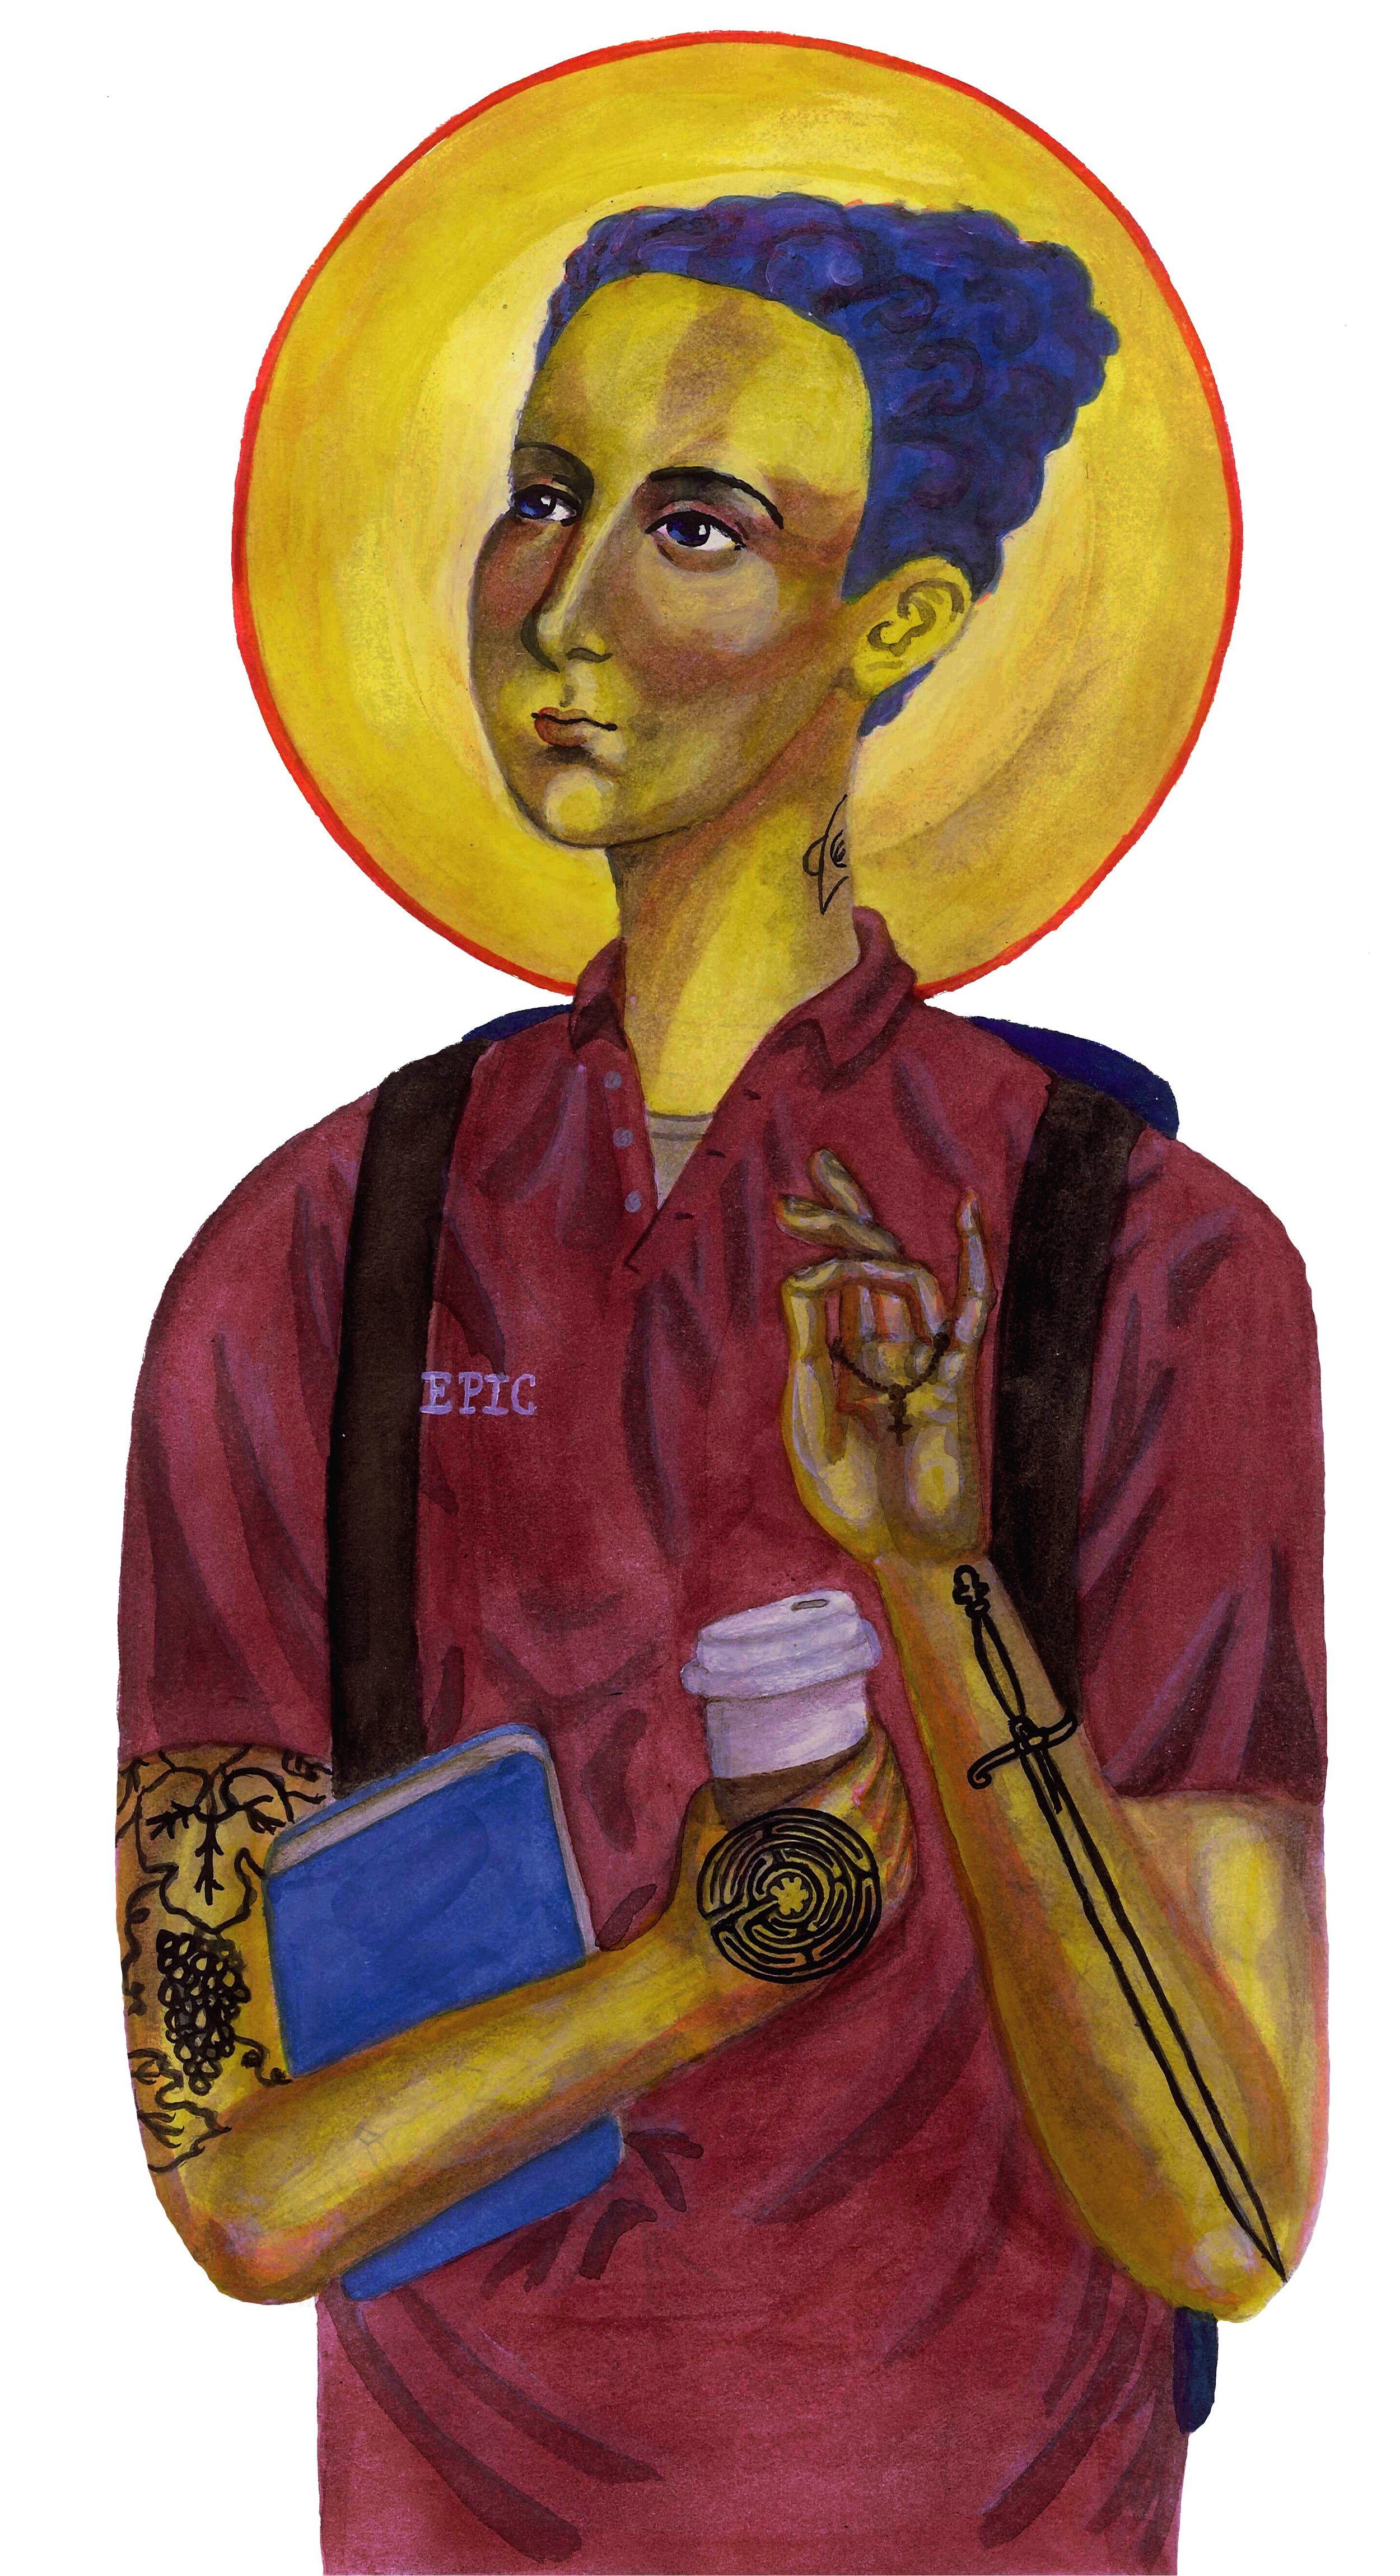 EPIC Icon Painting by Eli Gemora 2015-09-07.jpg